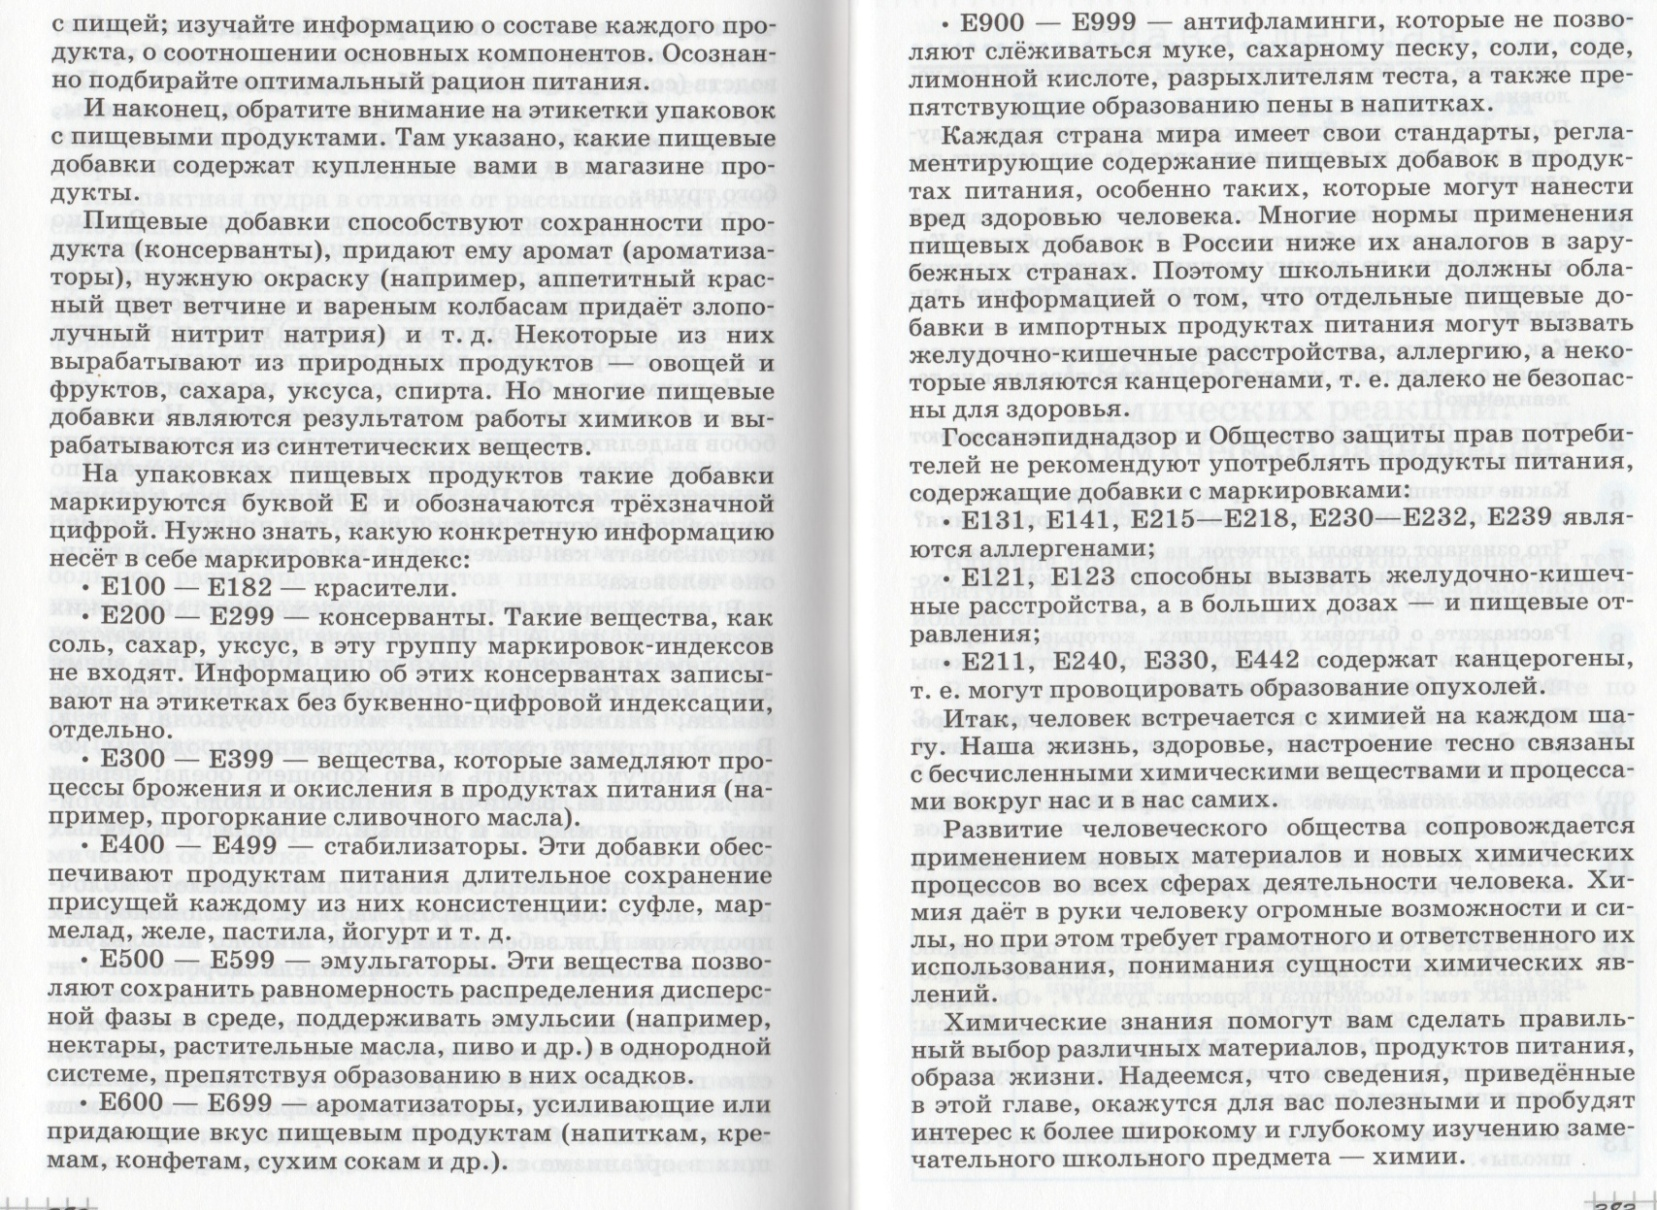 C:\Documents and Settings\Admin\Рабочий стол\Scan-150420-0002.jpg